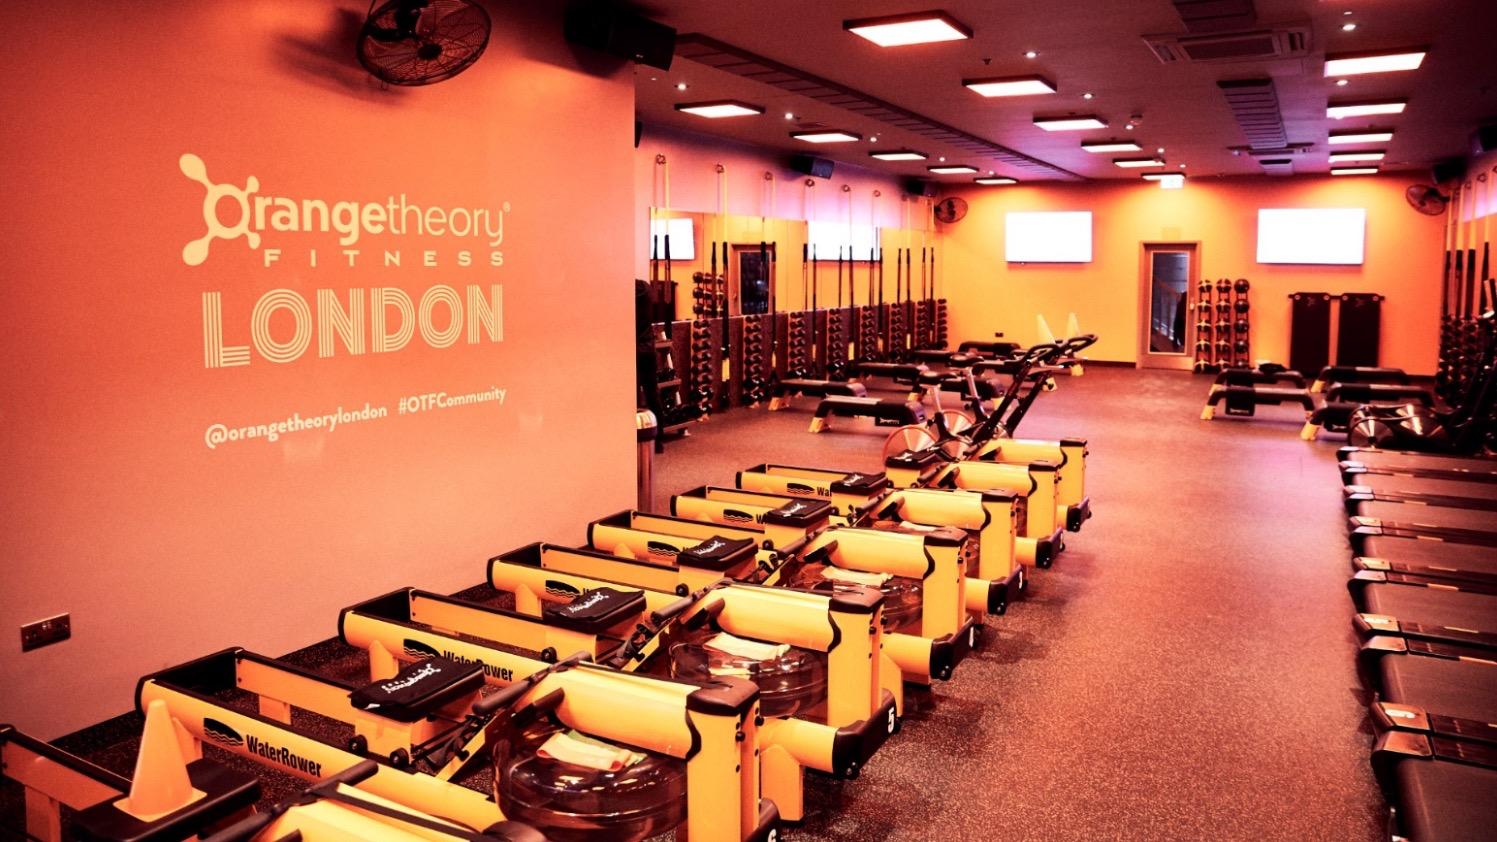 That Time I Tried Orange Theory Fitness Wandsworth